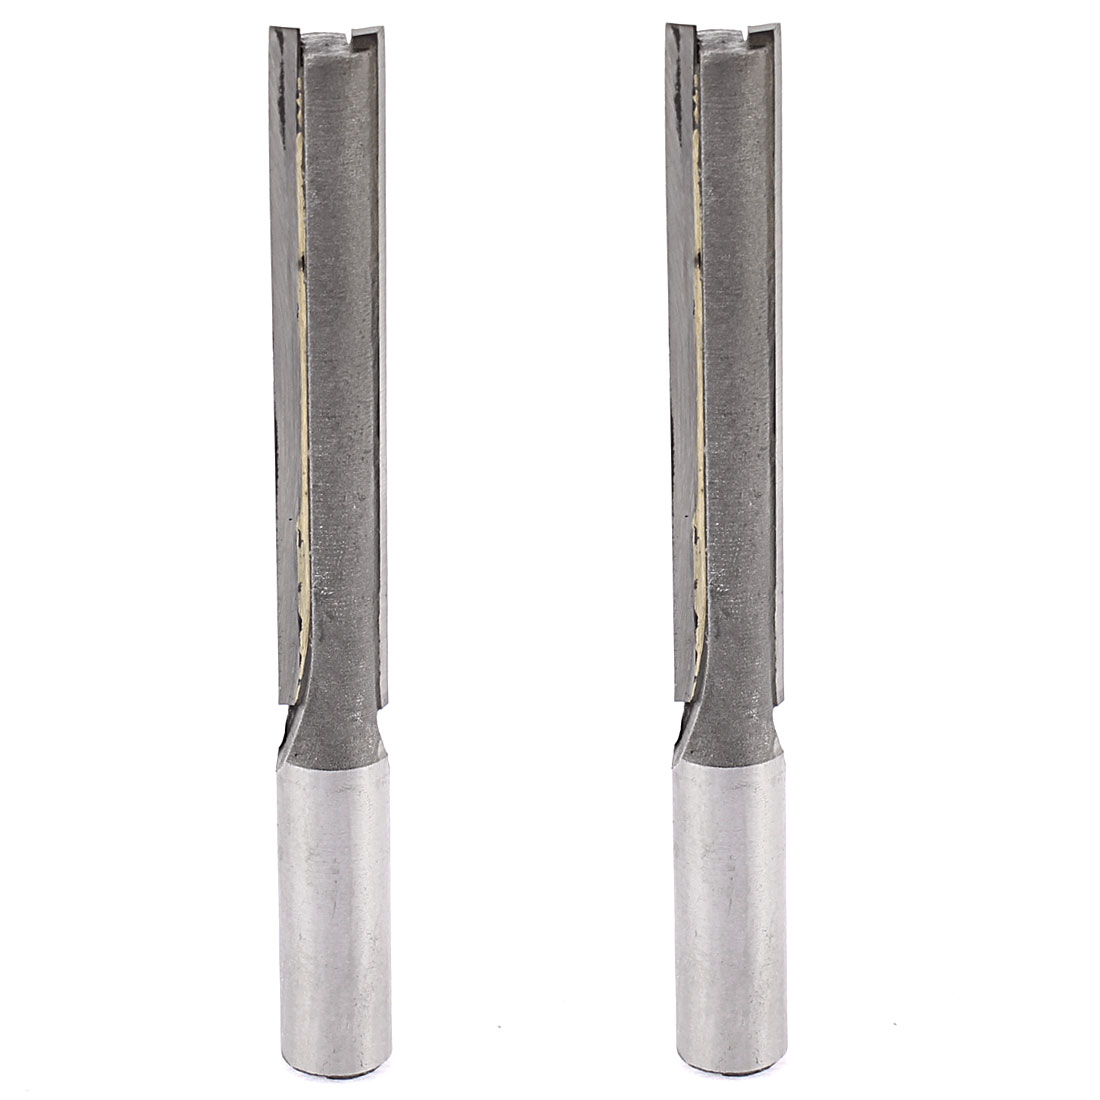 "1/2"" x 1/2"" x 3"" Double Flutes Edges Straight Router Bit 120mm Length 2pcs"